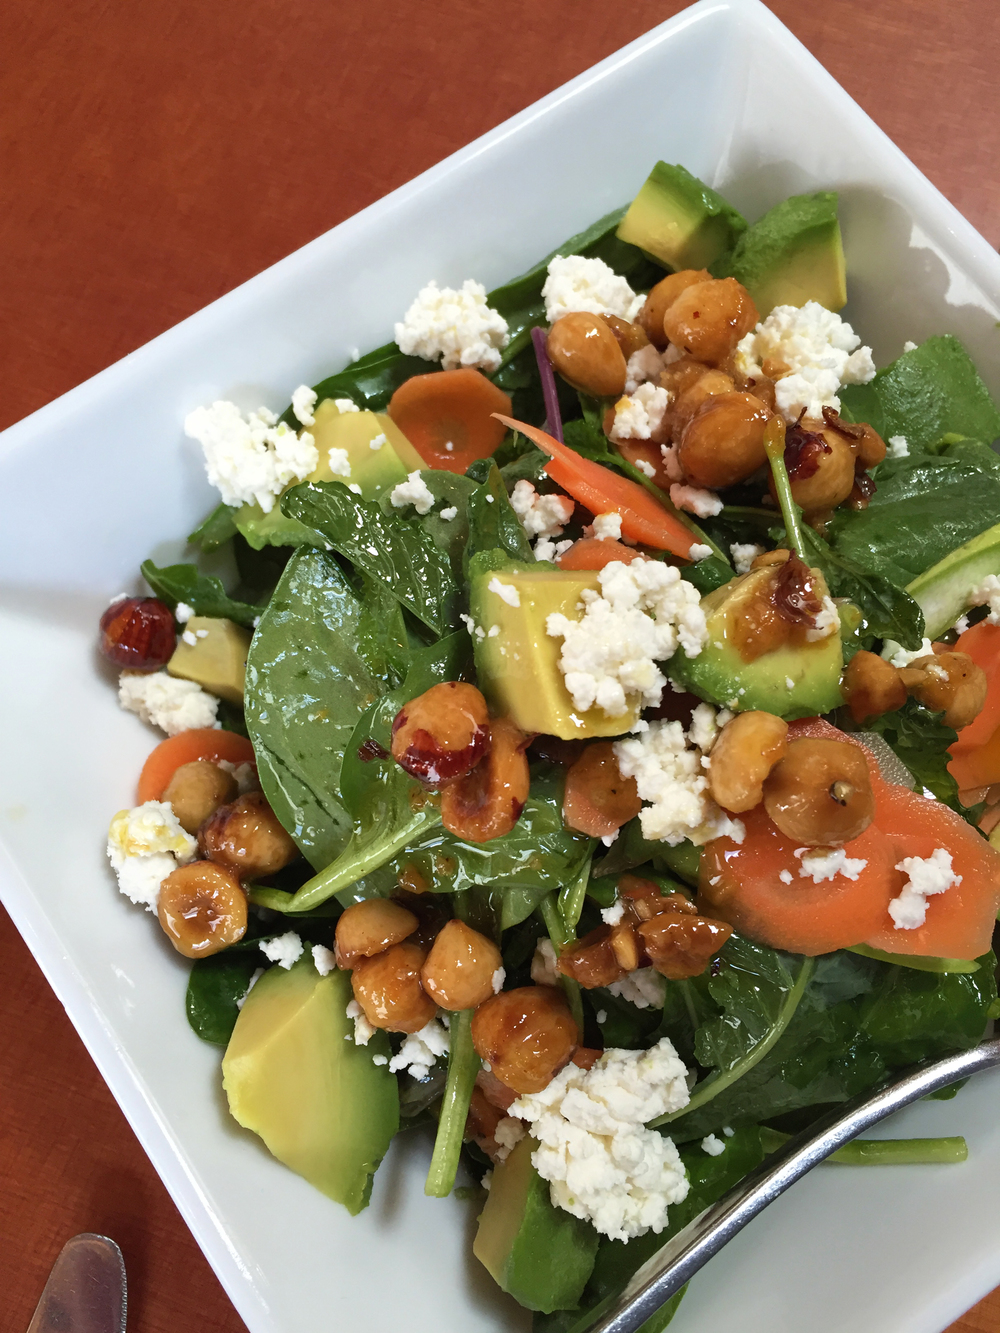 ASPARAGUS & MARKET BABY GREENS with hazelnut aillade, avocado, pickled carrots, feta, mint, lemon vinaigrette